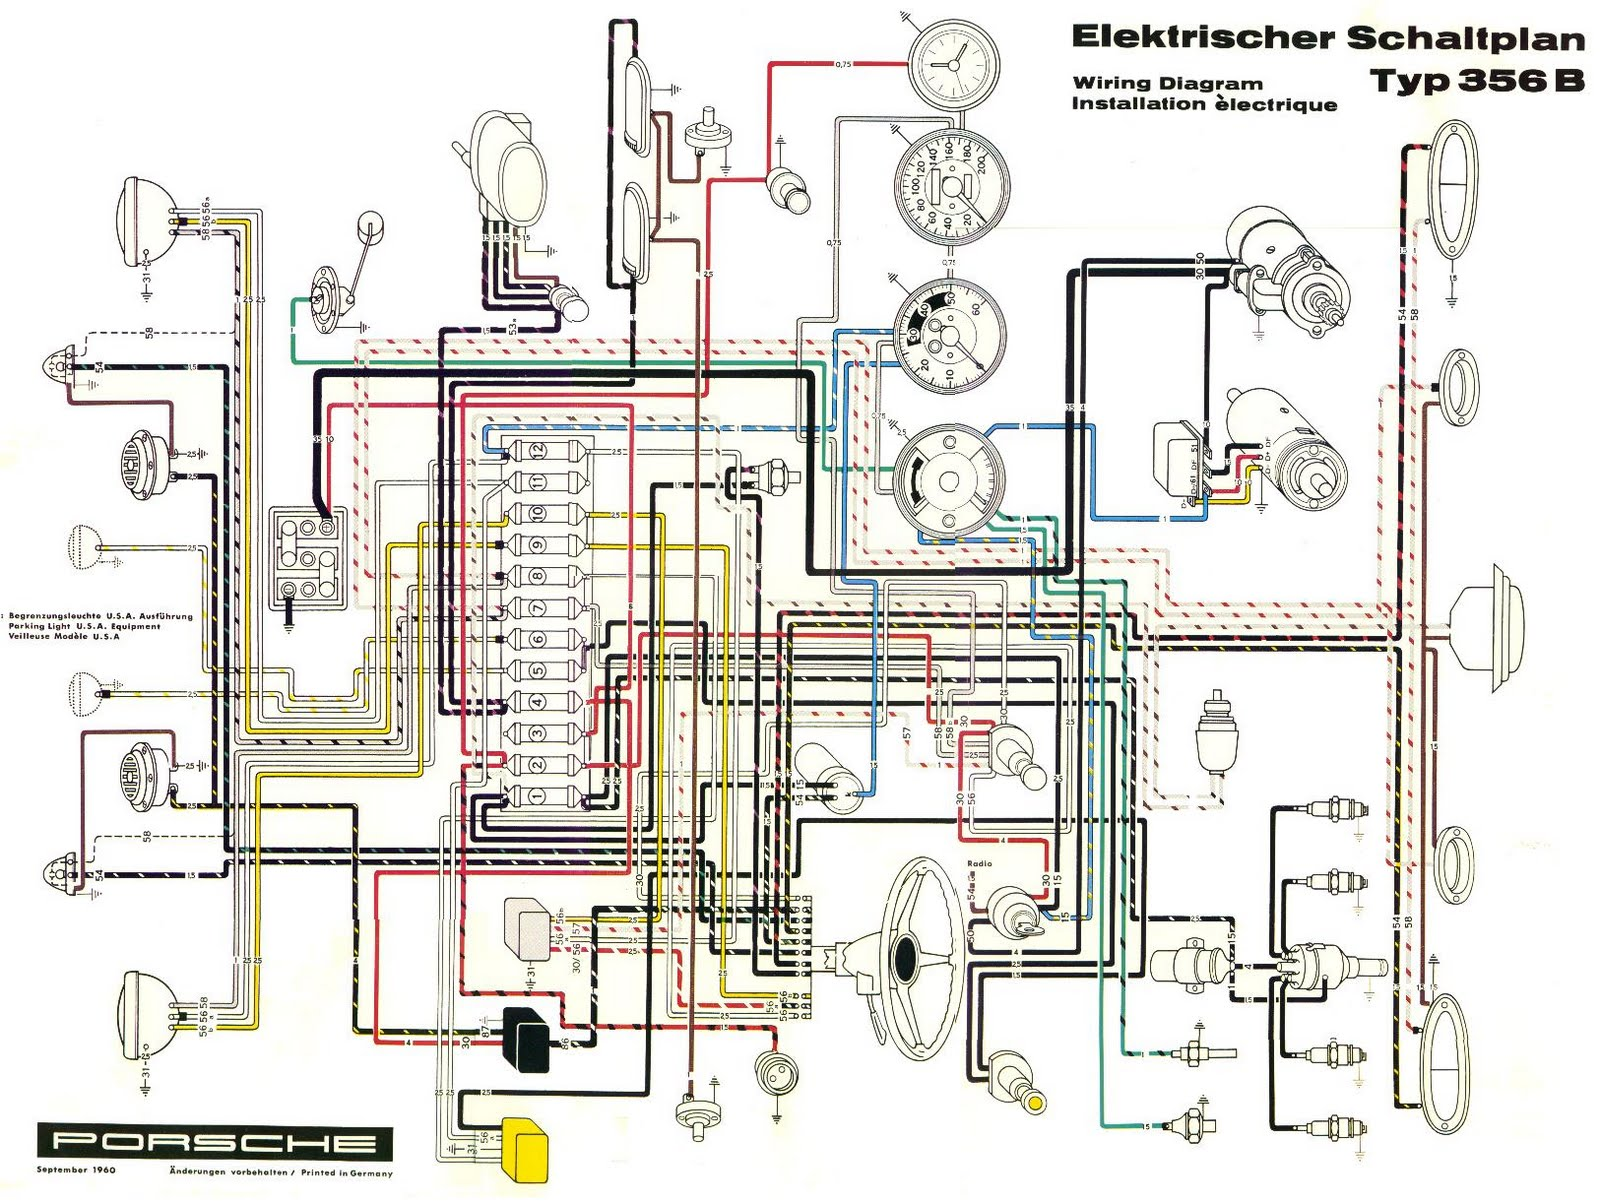 Porsche+356B+Wiring+Diagram?t=1508746814 porsche car manuals, wiring diagrams pdf & fault codes 1980 porsche 928 wiring diagram at virtualis.co